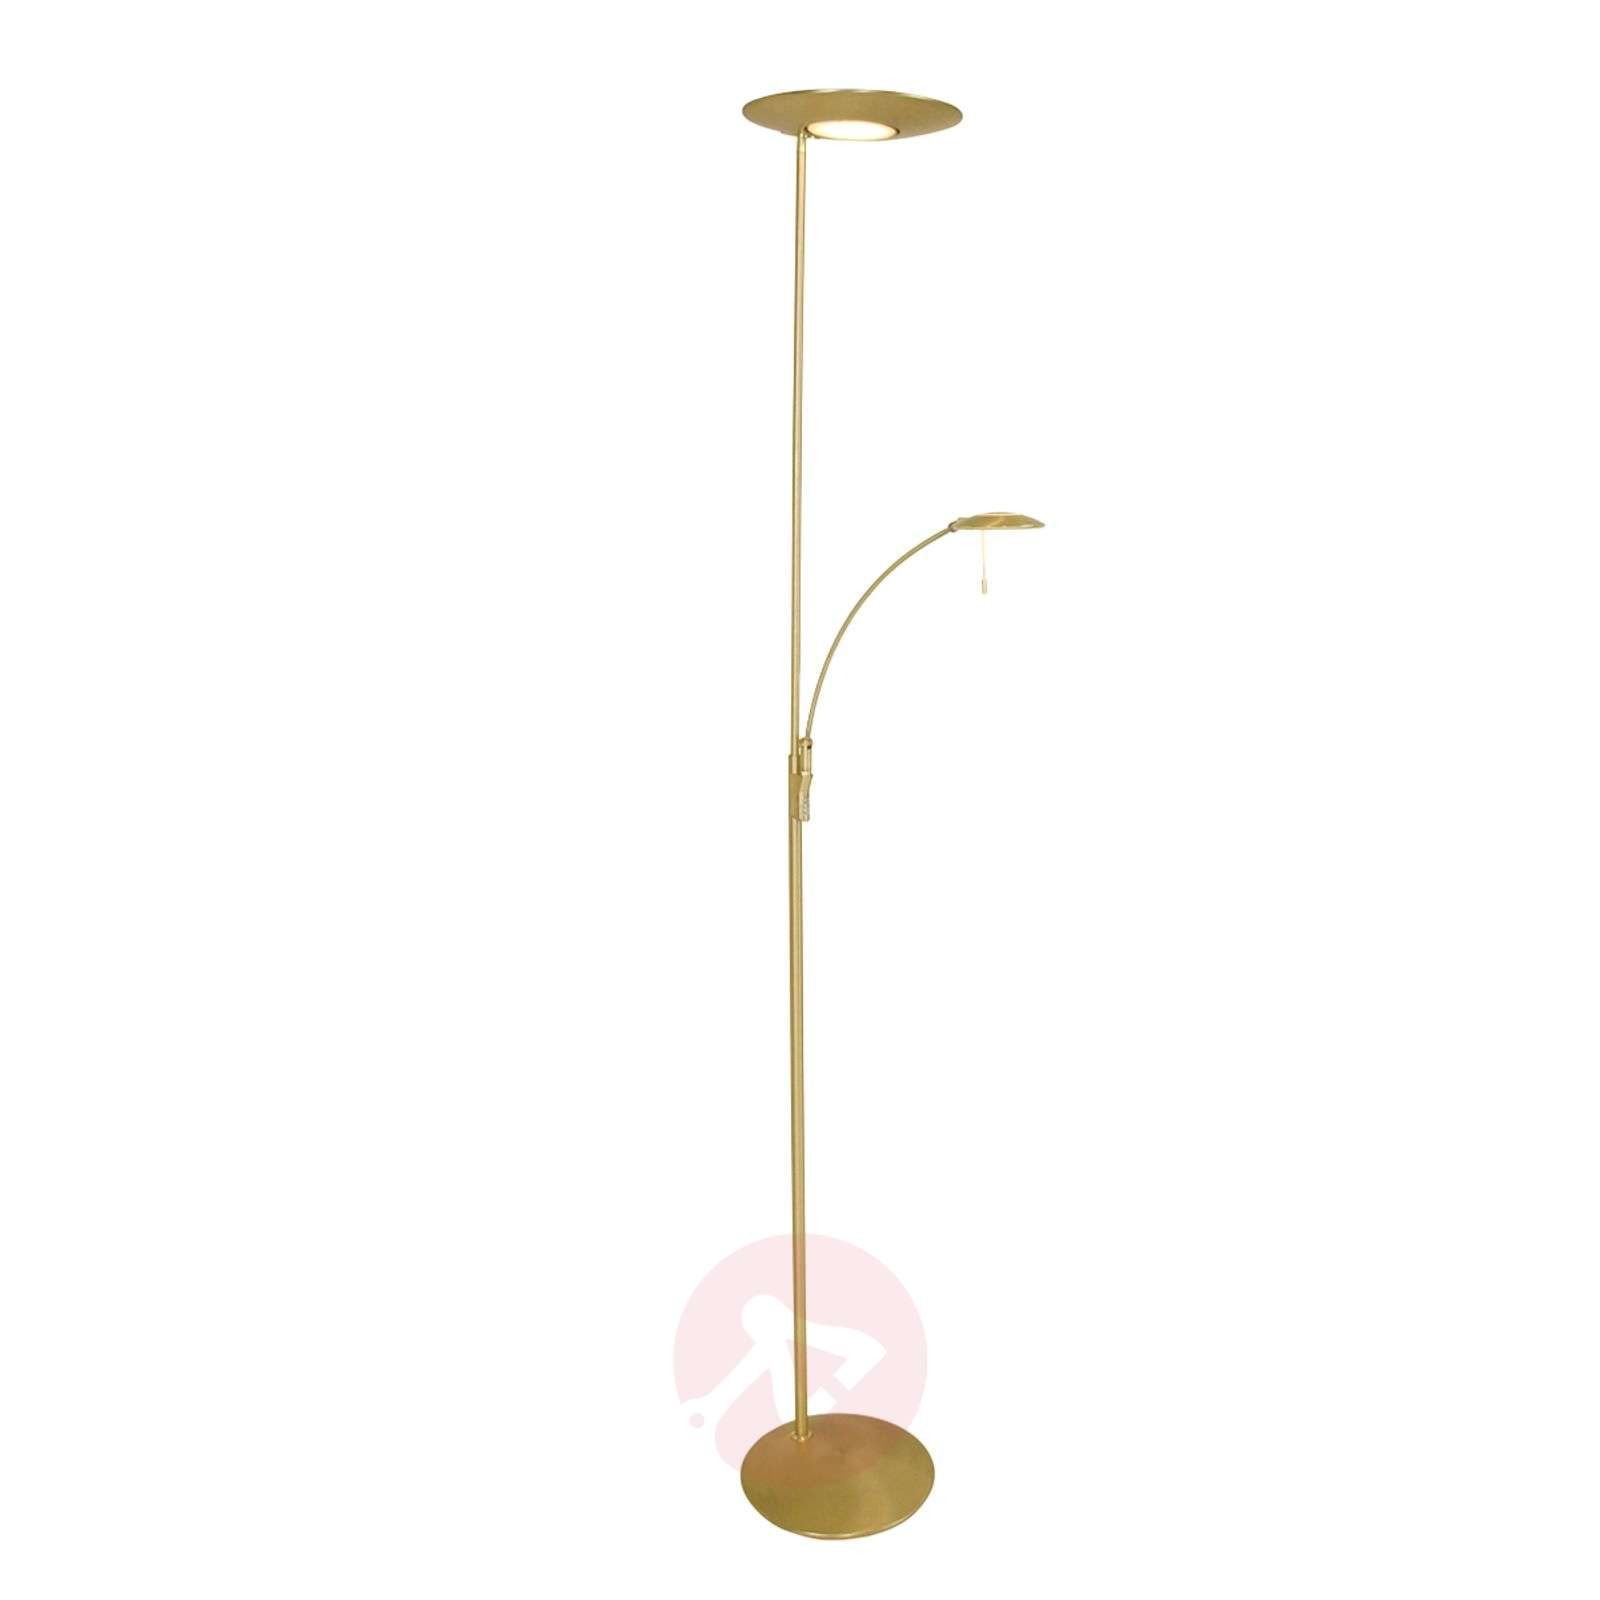 Dimmer and reading light led floor lamp zenith lights for Floor reading lamp with dimmer